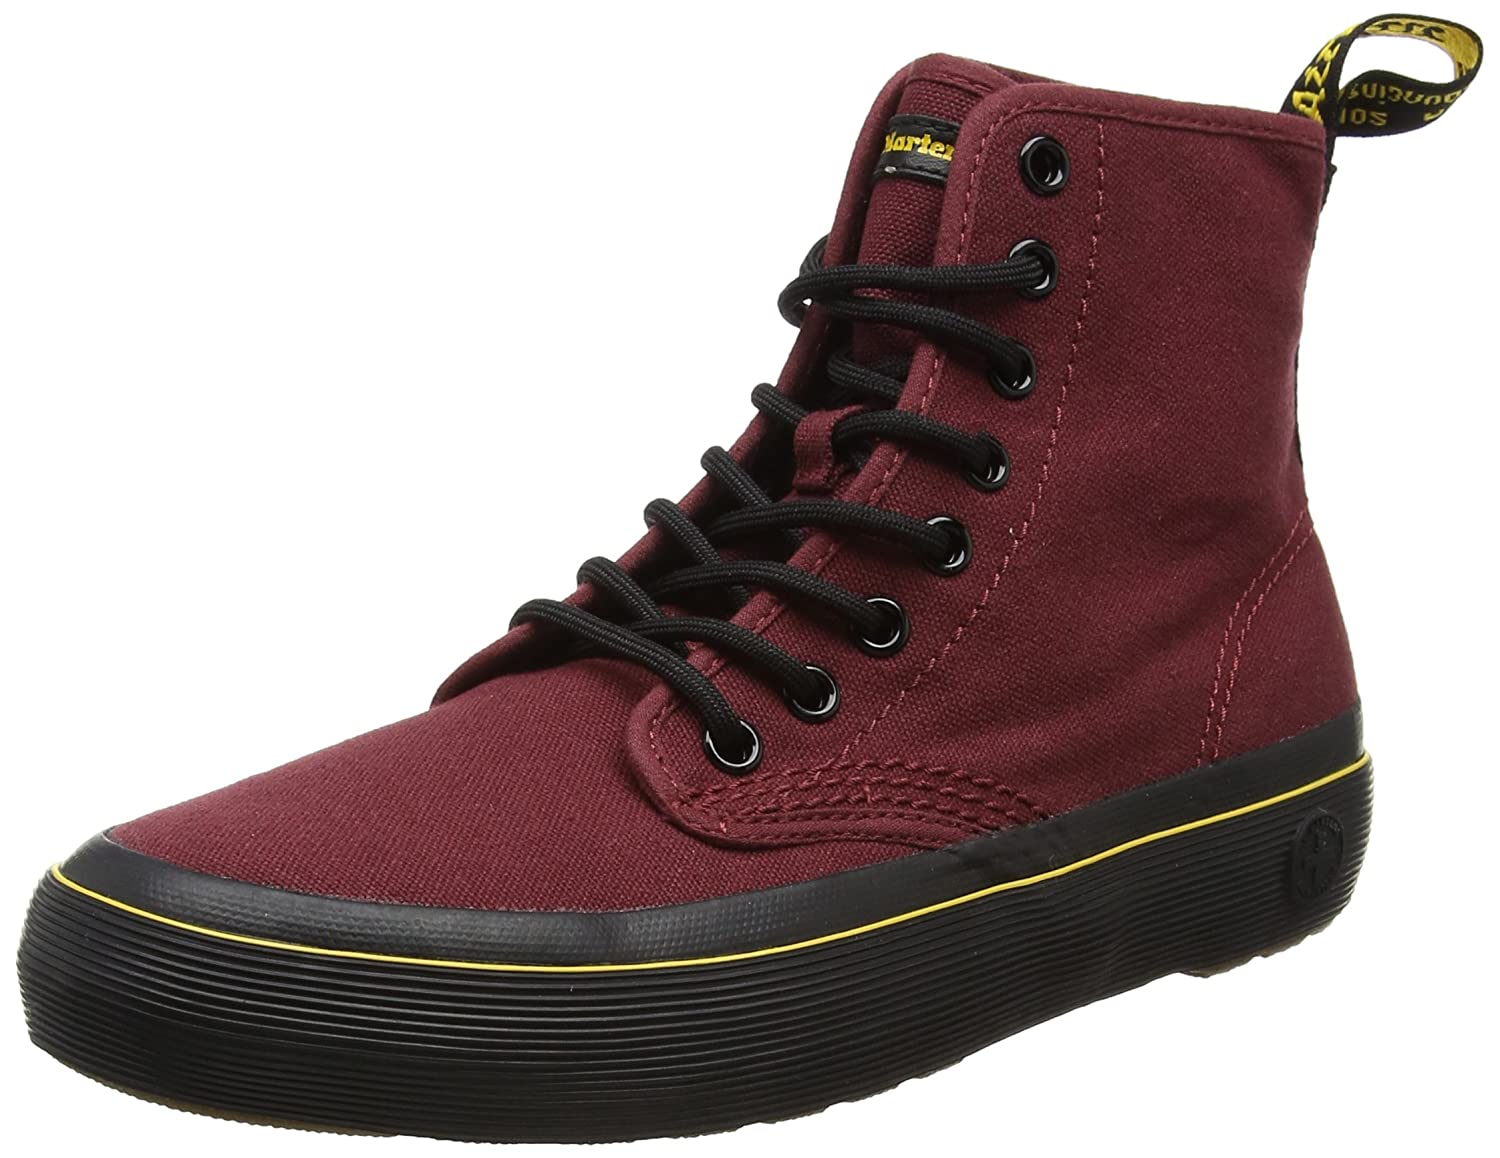 Monet Cherry Red Canvas Boot